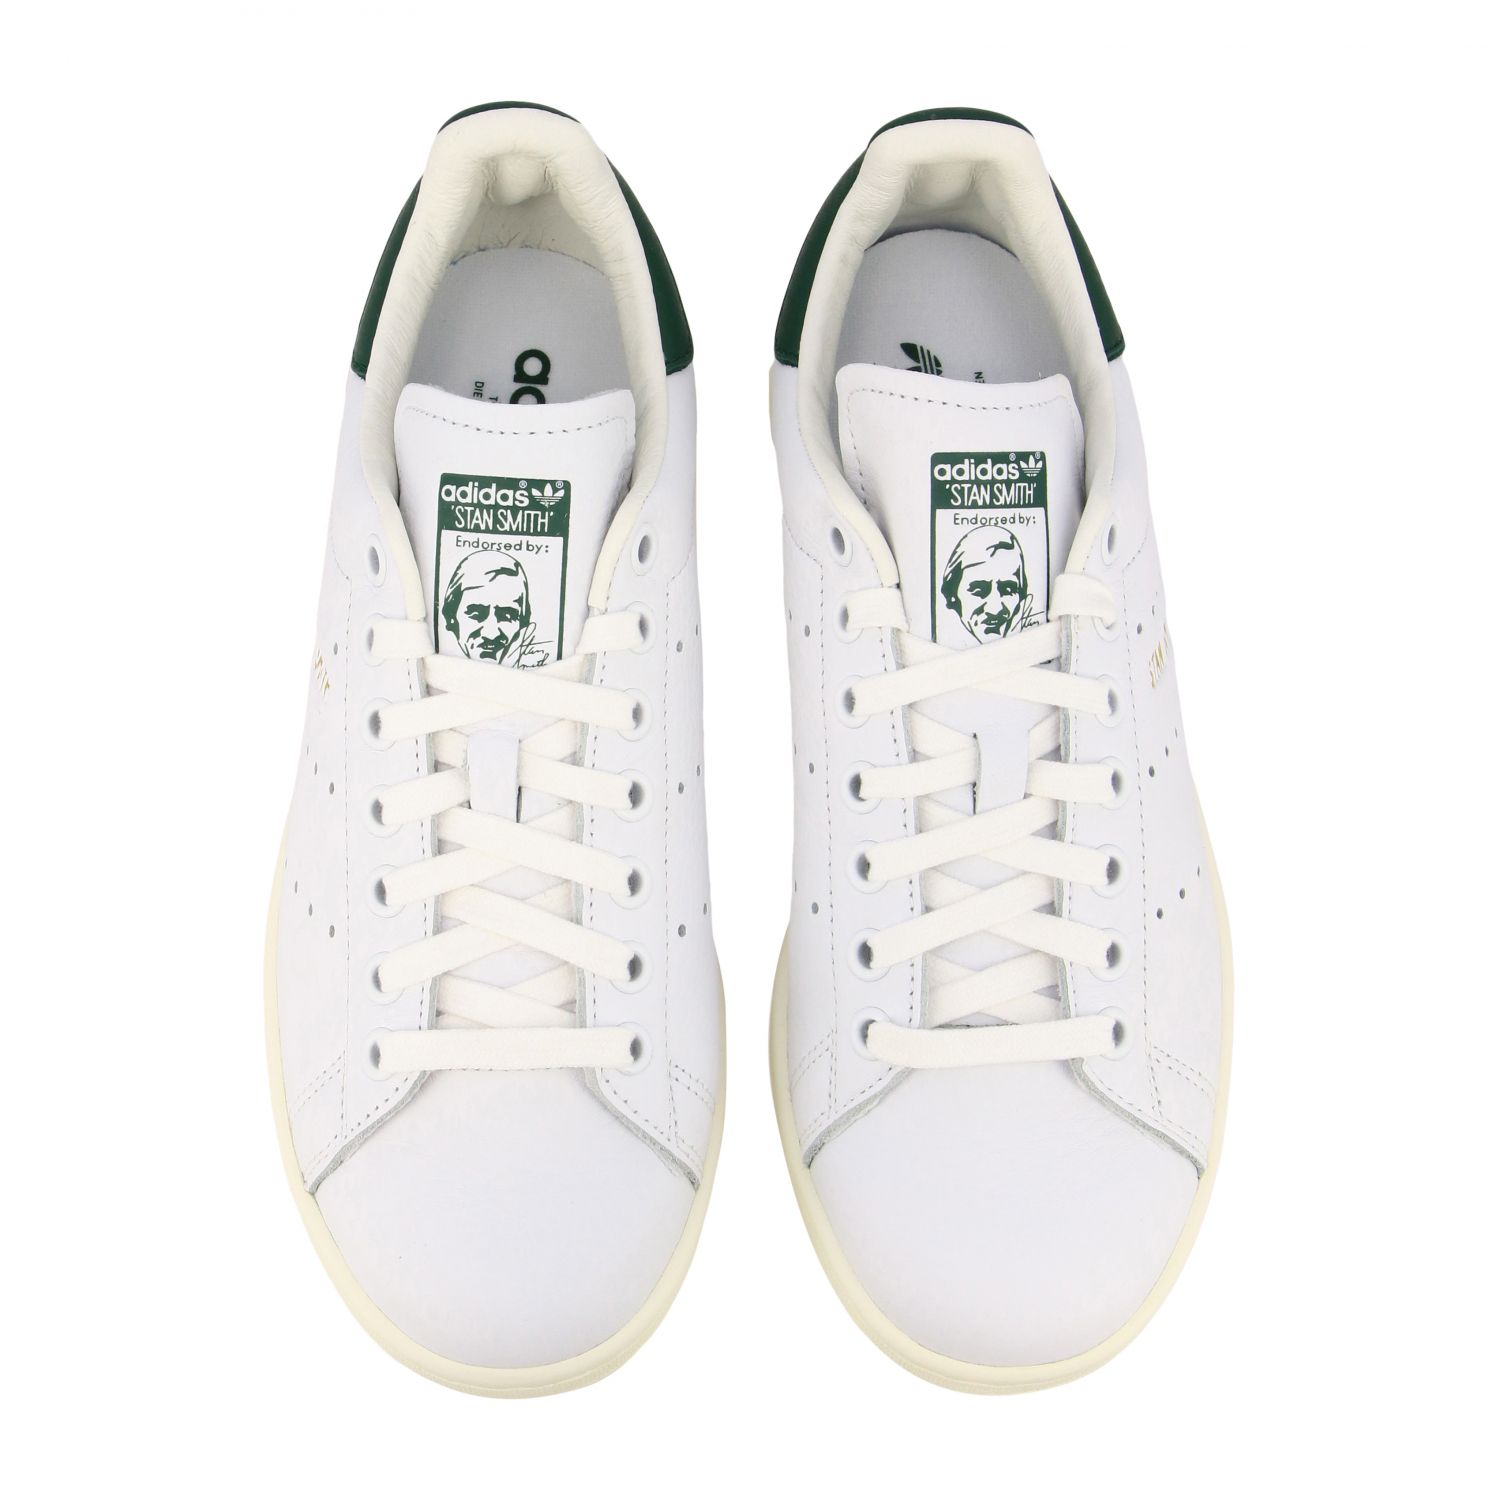 Sneakers Adidas Originals: Sneakers Stan smith Adidas Originals in pelle bianco 3